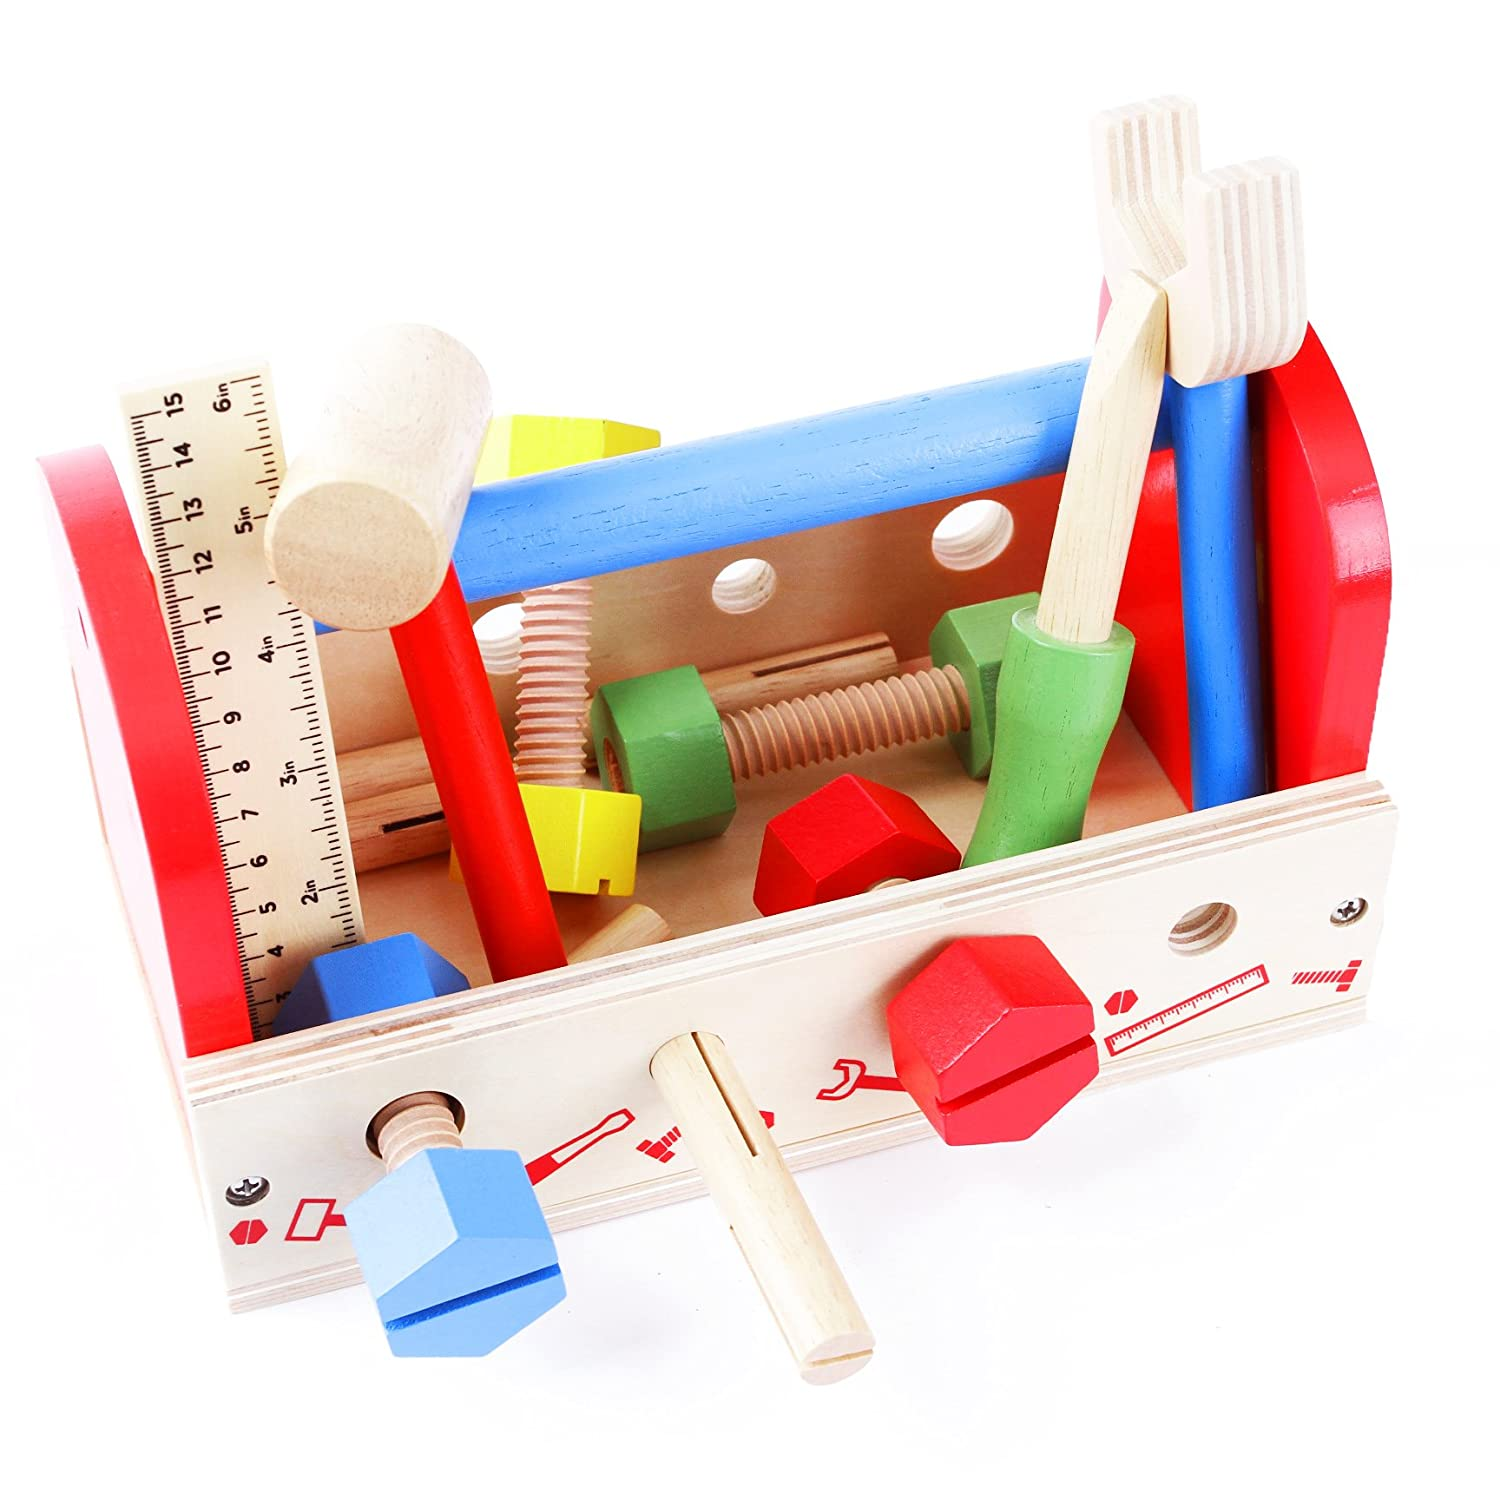 Babe Rock Kids Toy Tool Kit Wooden Construction Toy with Accessory Play Set for Kids Toddlers Build 19 pcs